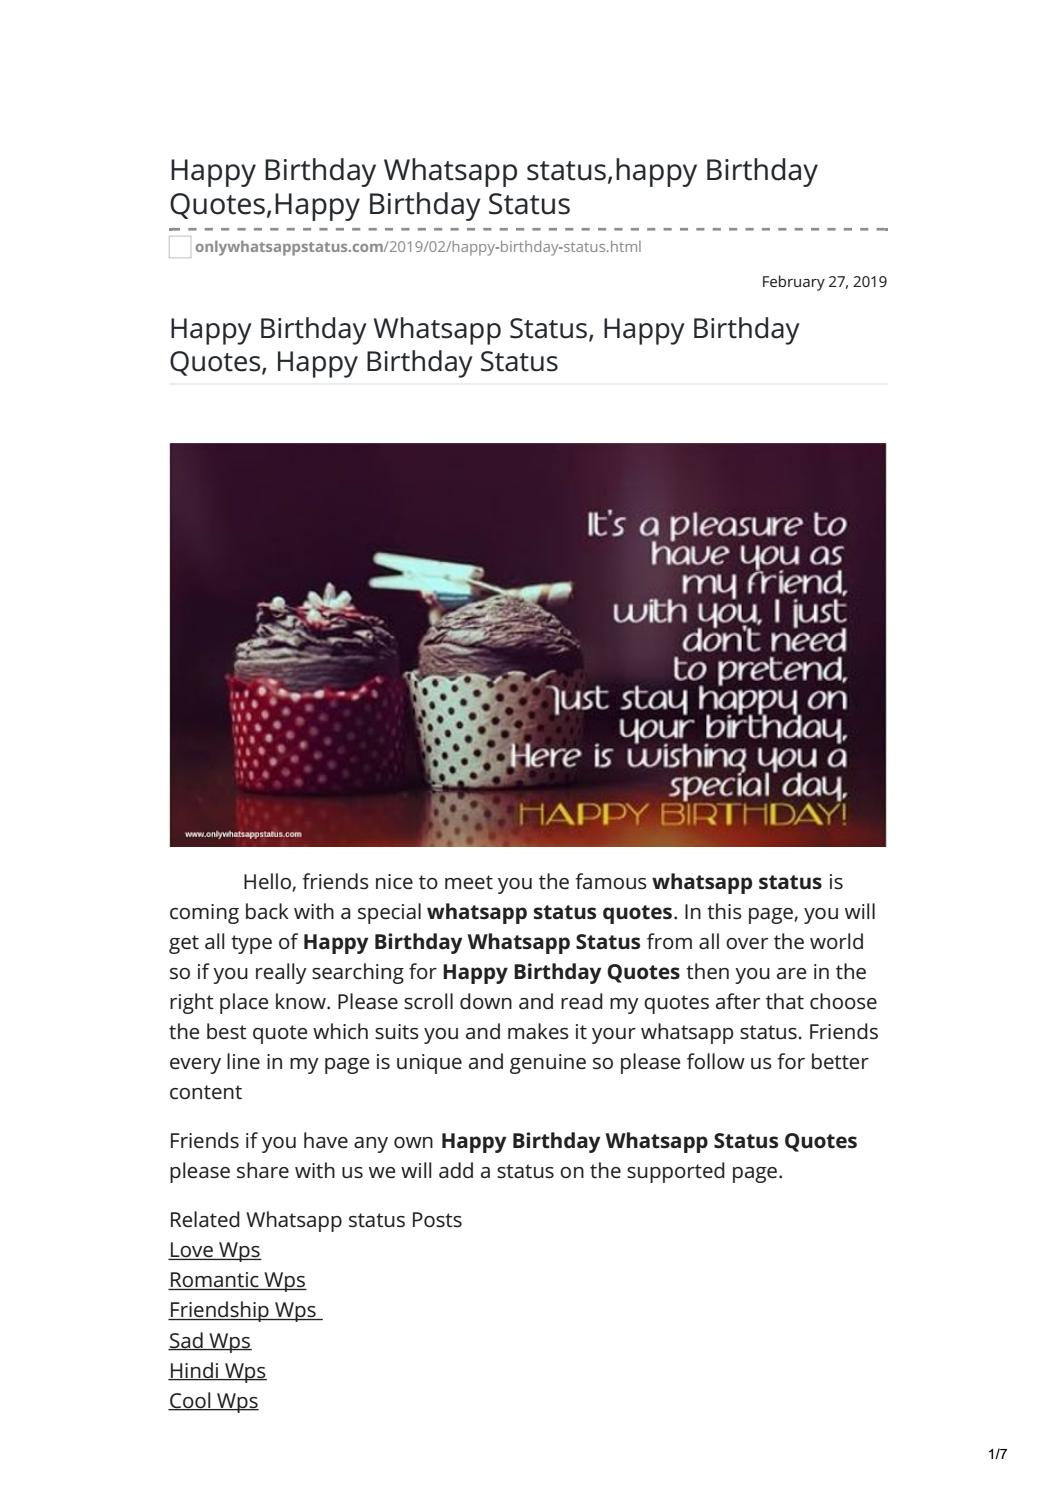 Happy Birthday Whatsapp Status Happy Birthday Quotes Happy